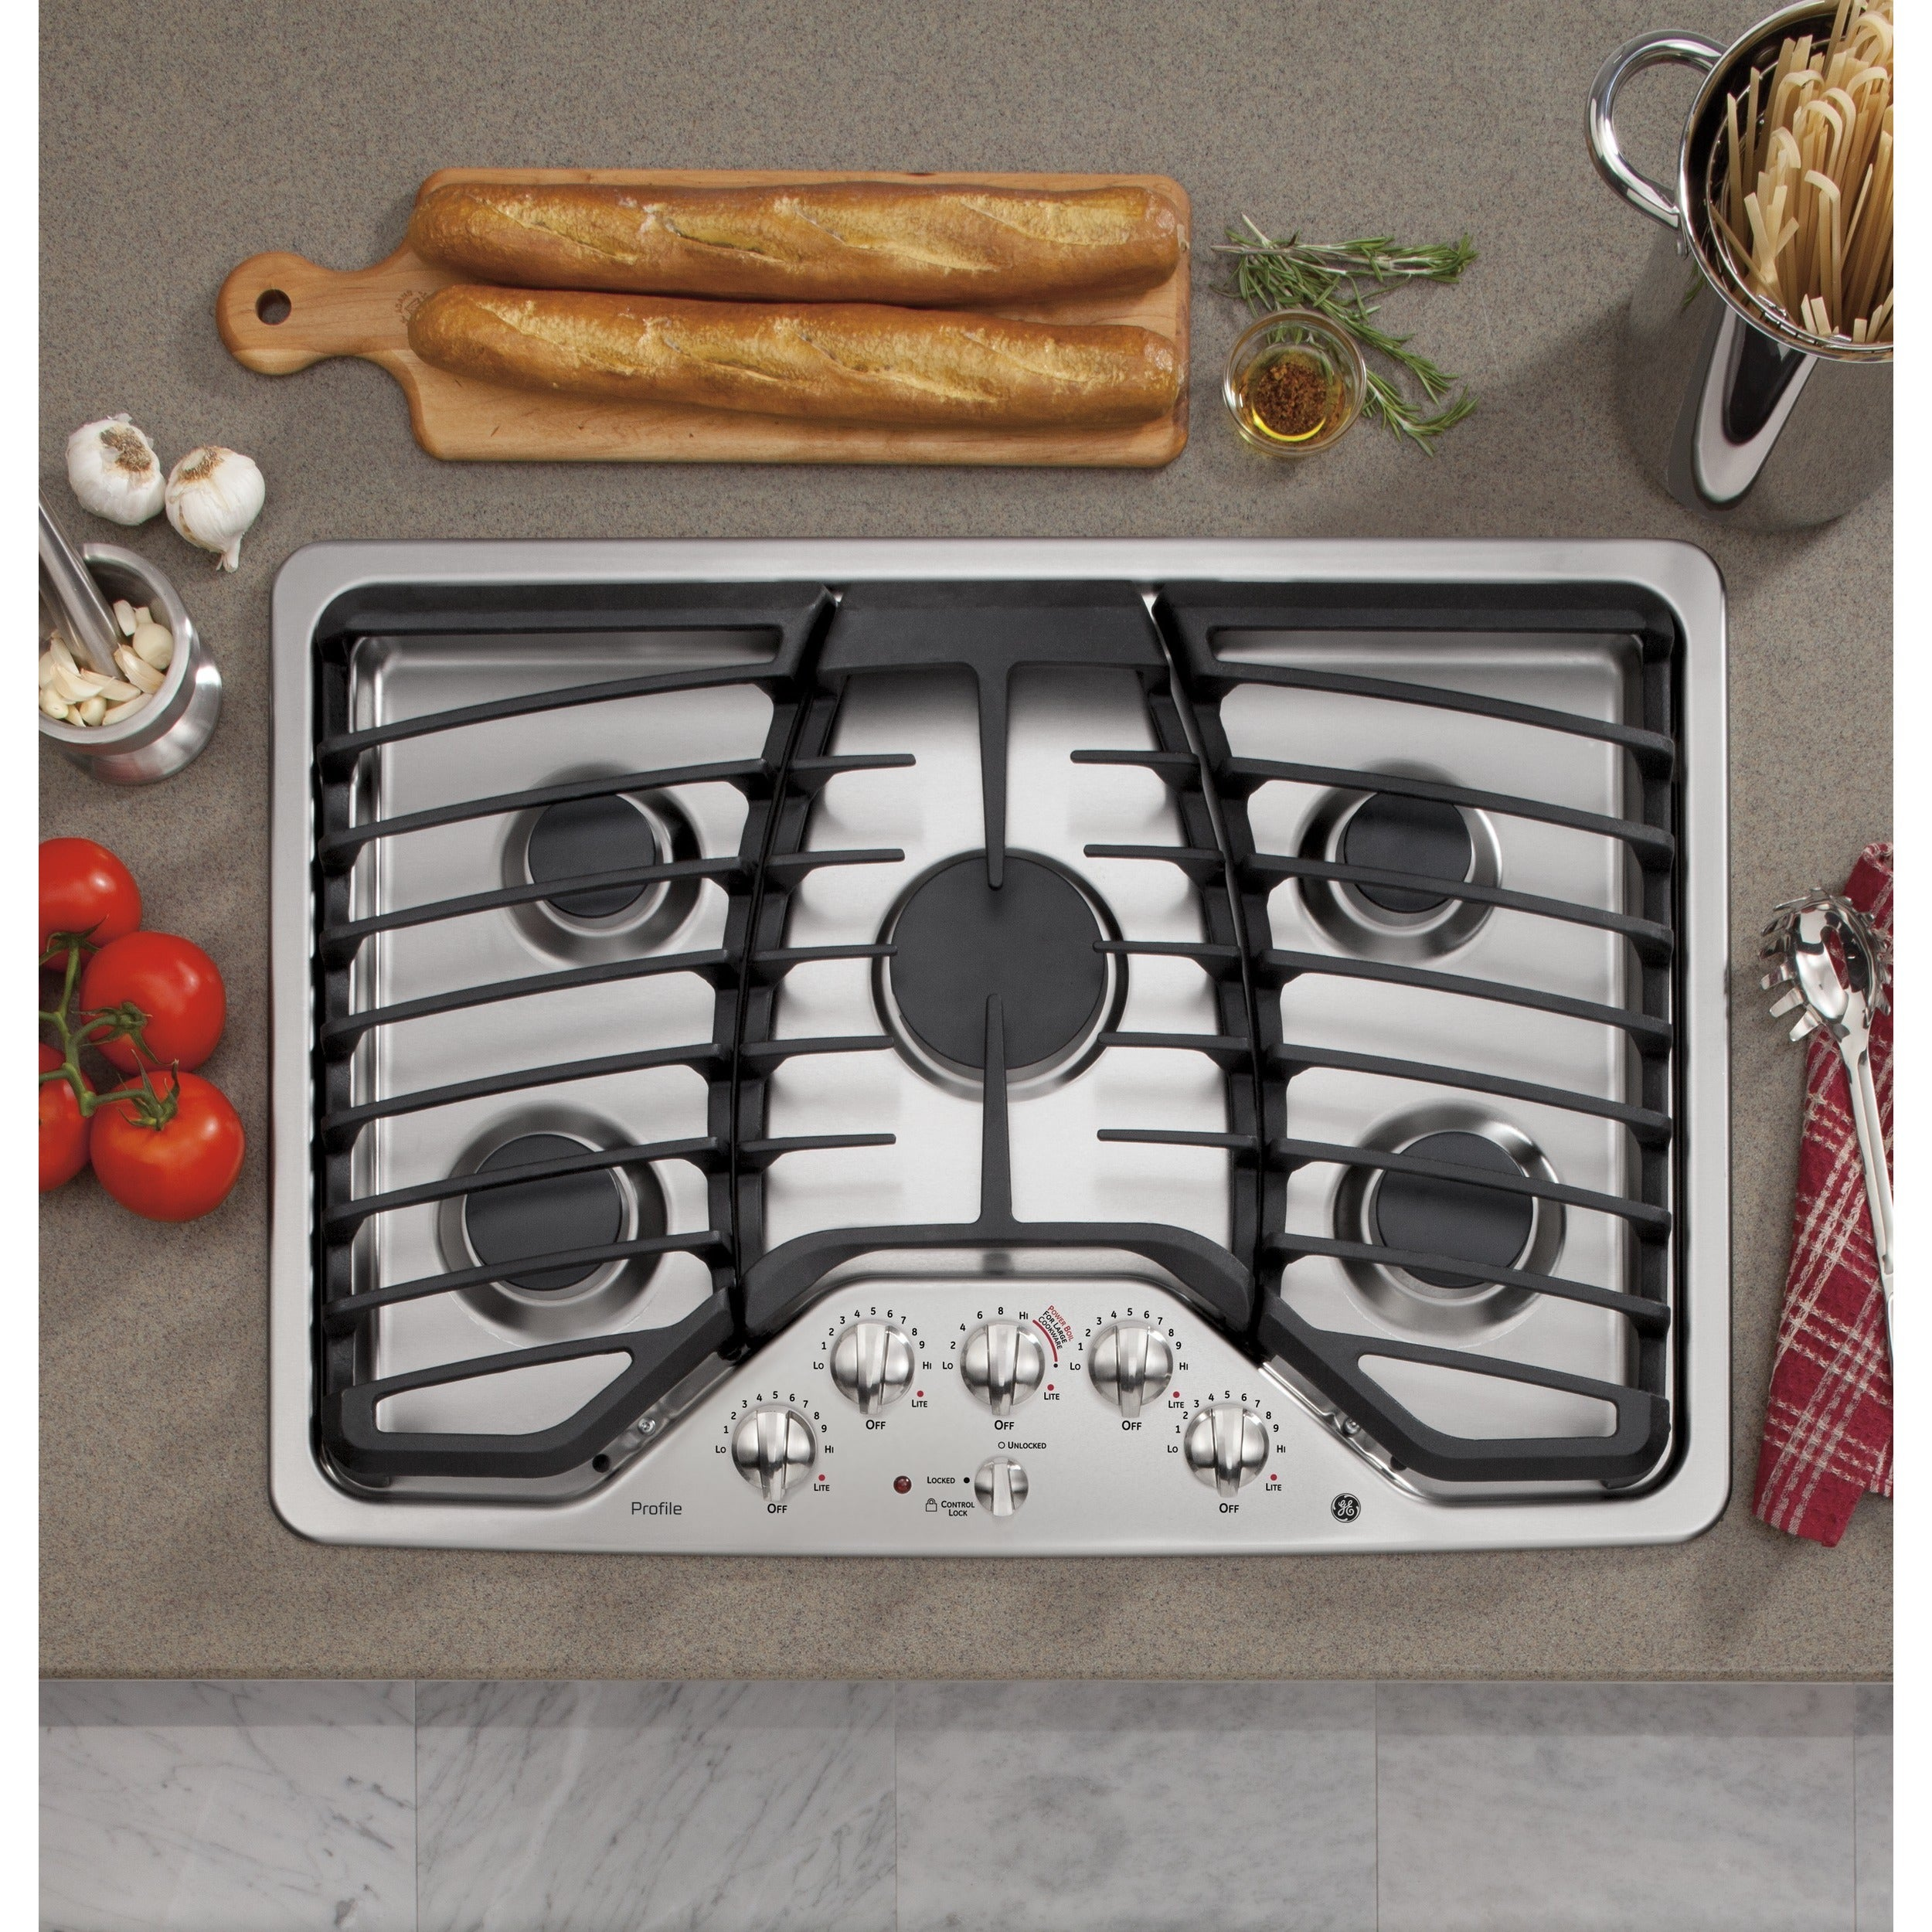 Ge Profile 30 Inch Built In Gas Cooktop 10206869